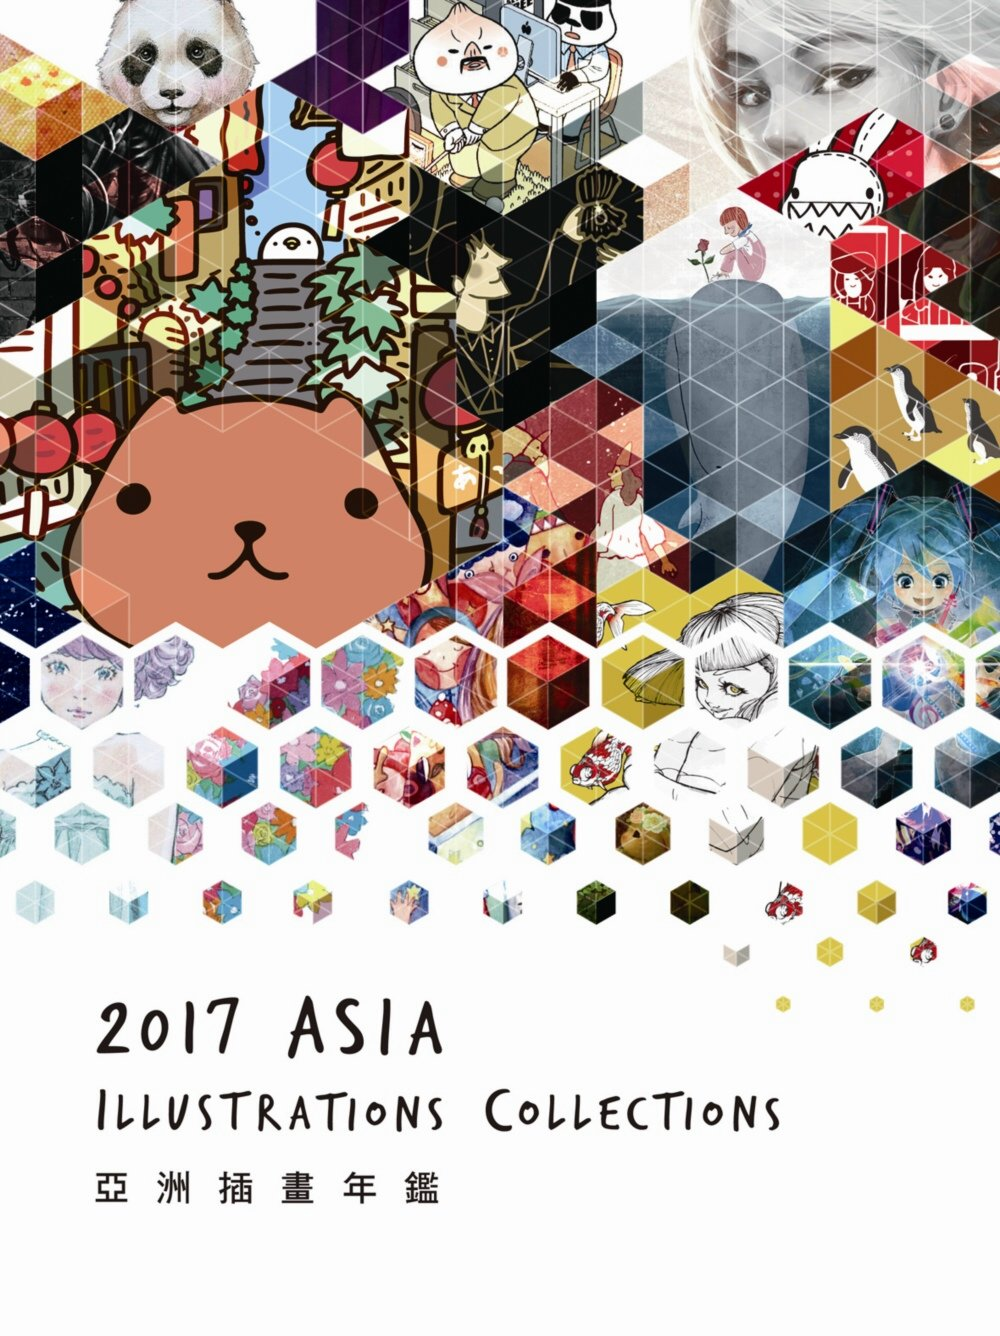 亞洲插畫年鑑 2017 ASIA ILLUSTRATIONS COLLECTIONS